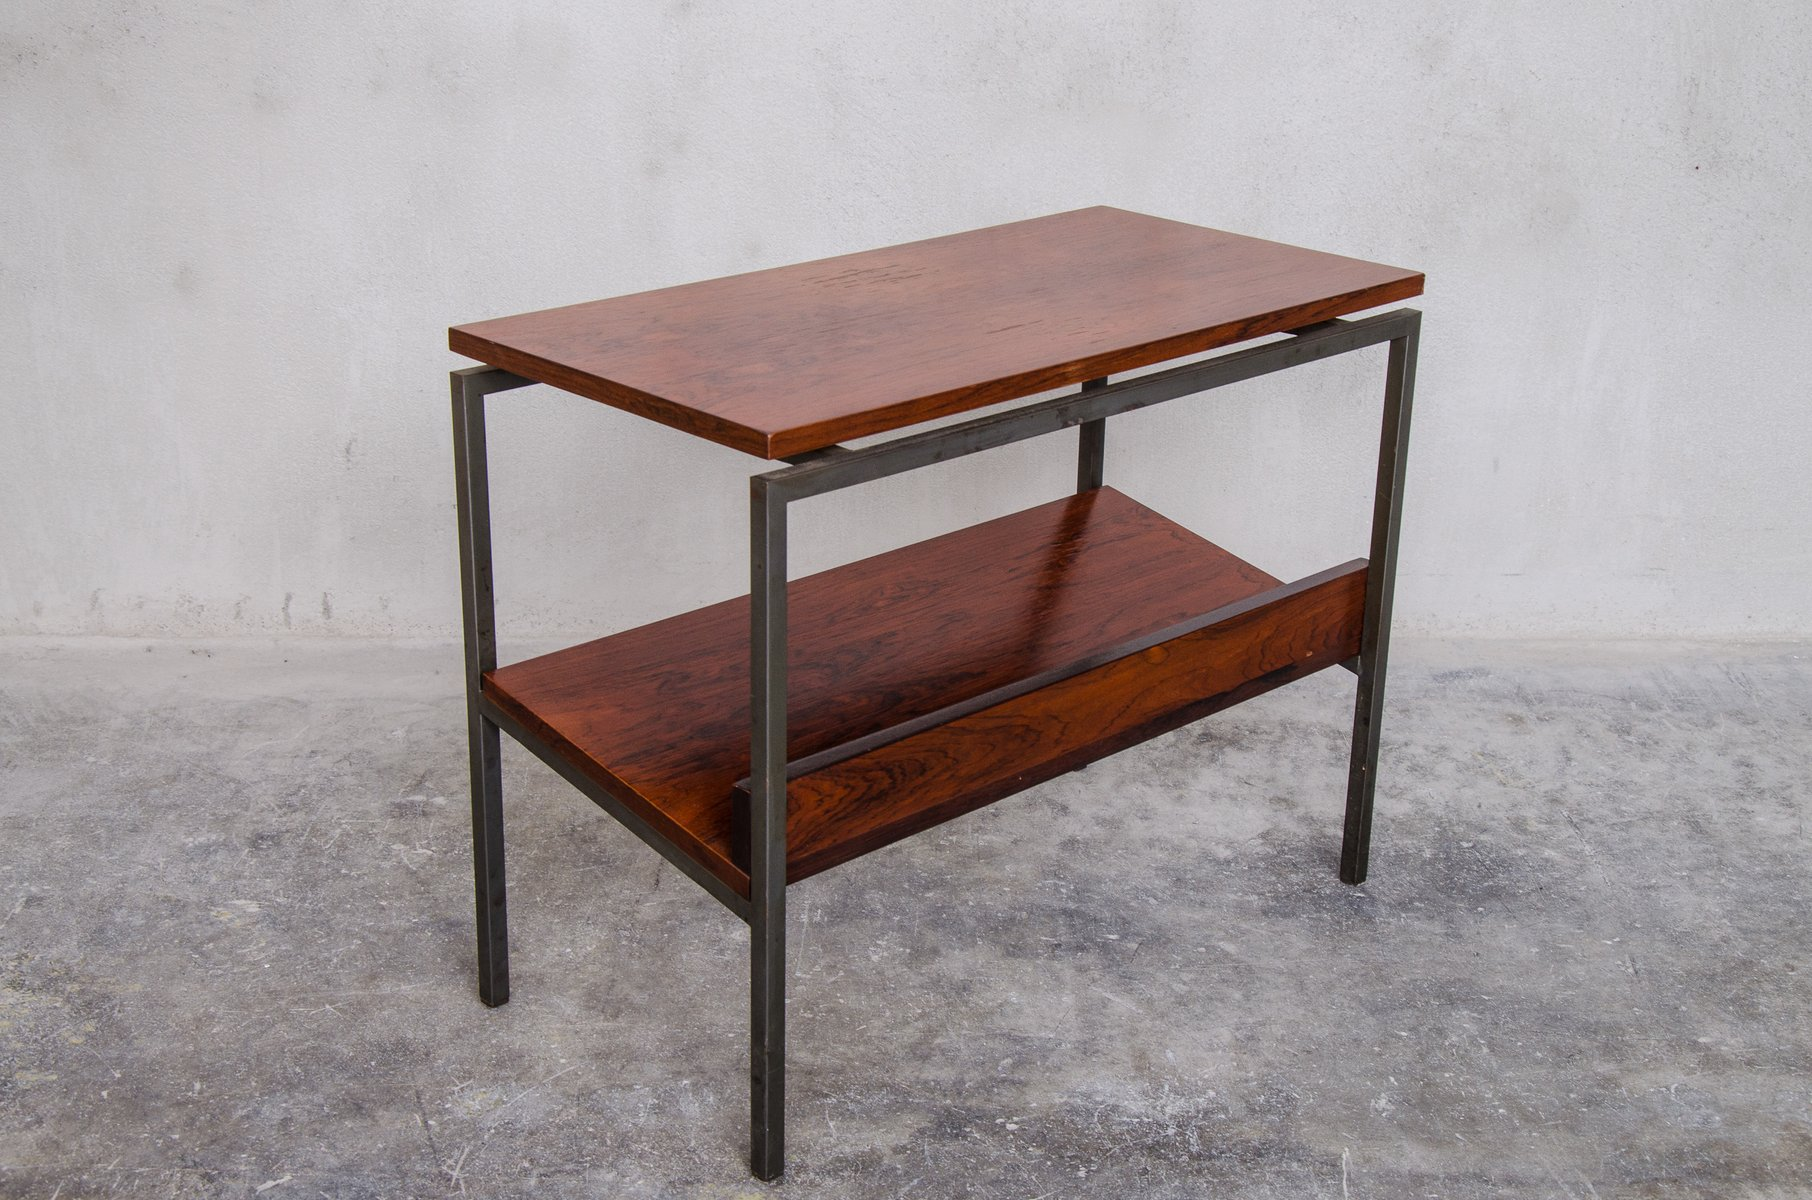 Danish Rosewood Side Table with Magazine Rack 1960s for sale at